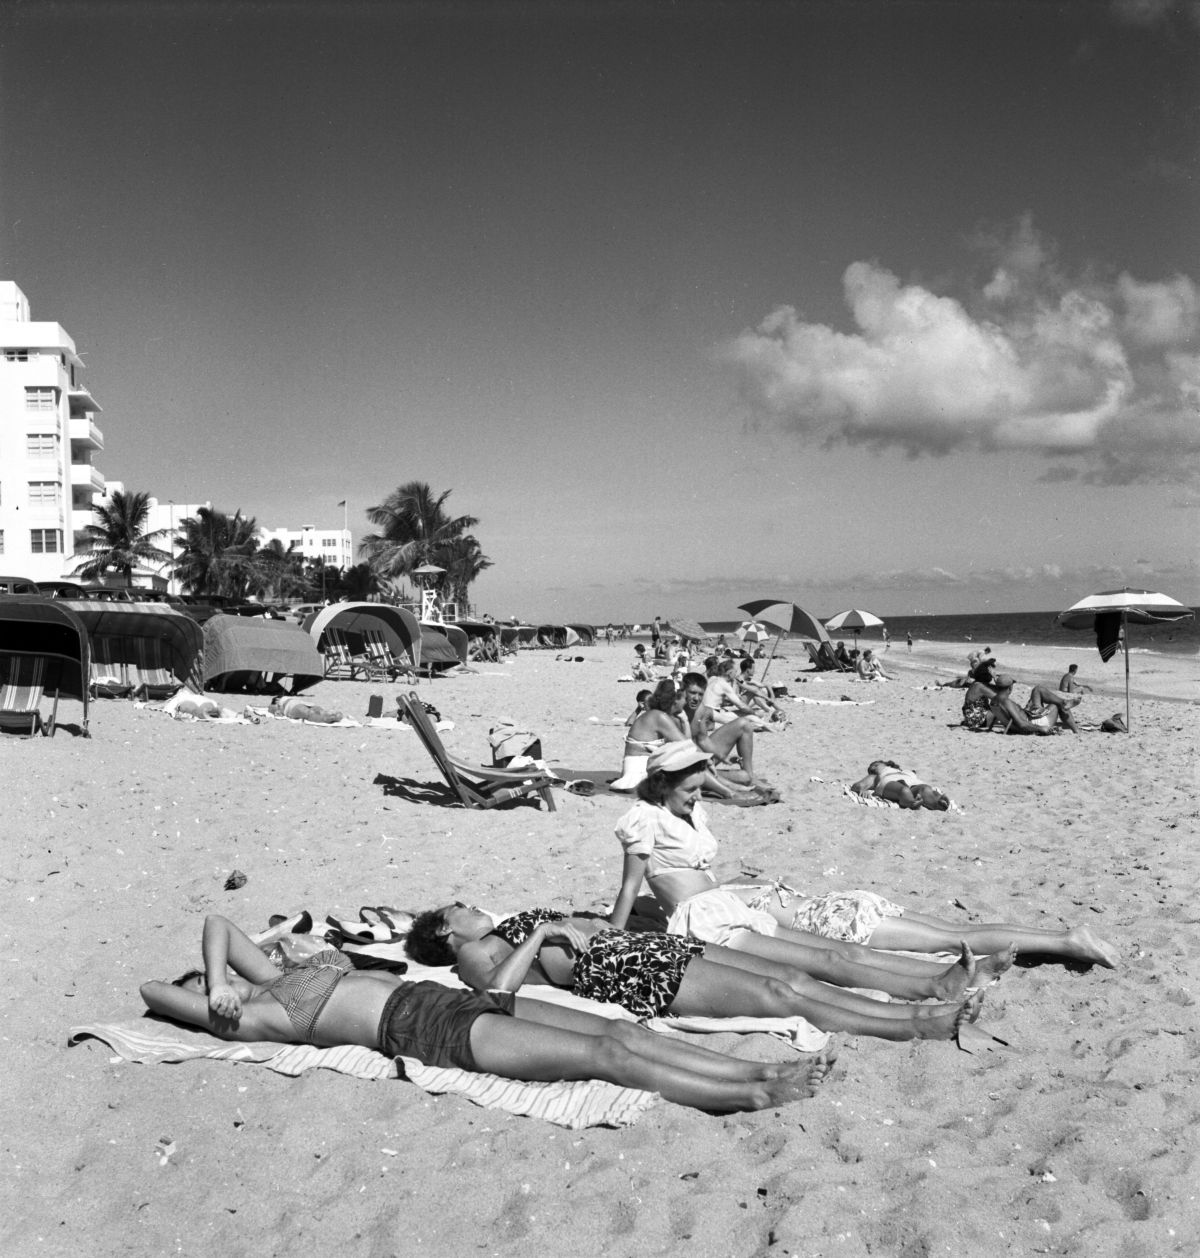 Sun-bathers at Fort Lauderdale beach.